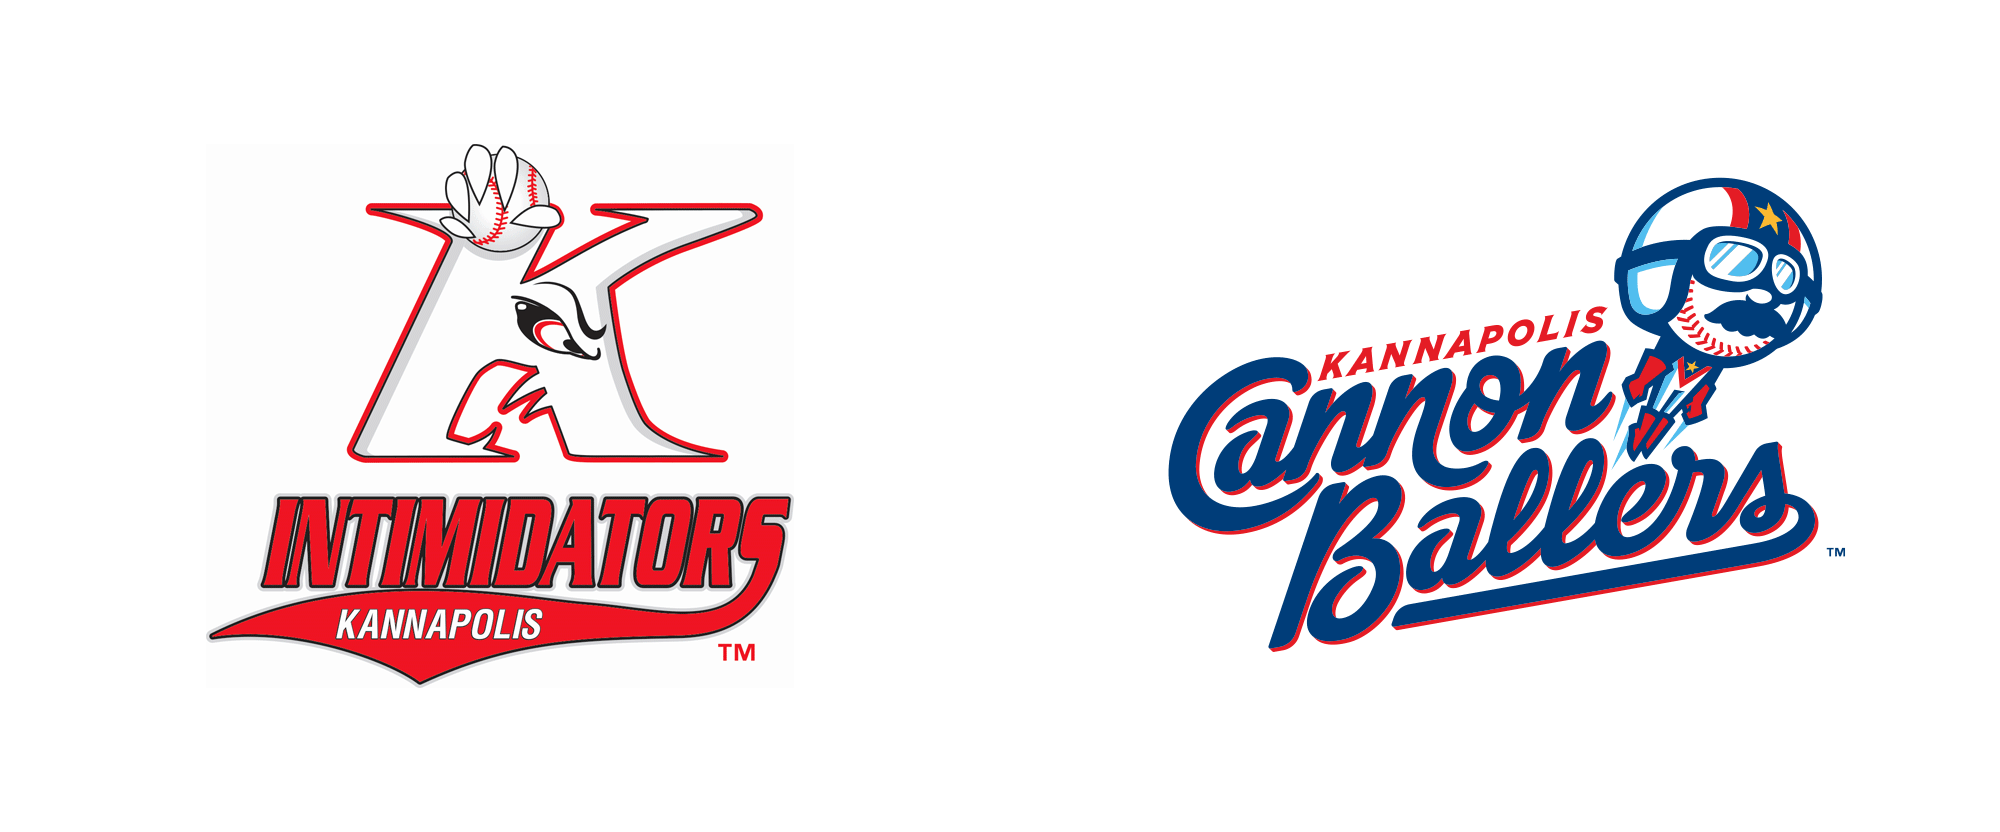 New Name and Logos for Kannapolis Cannon Ballers by Studio Simon